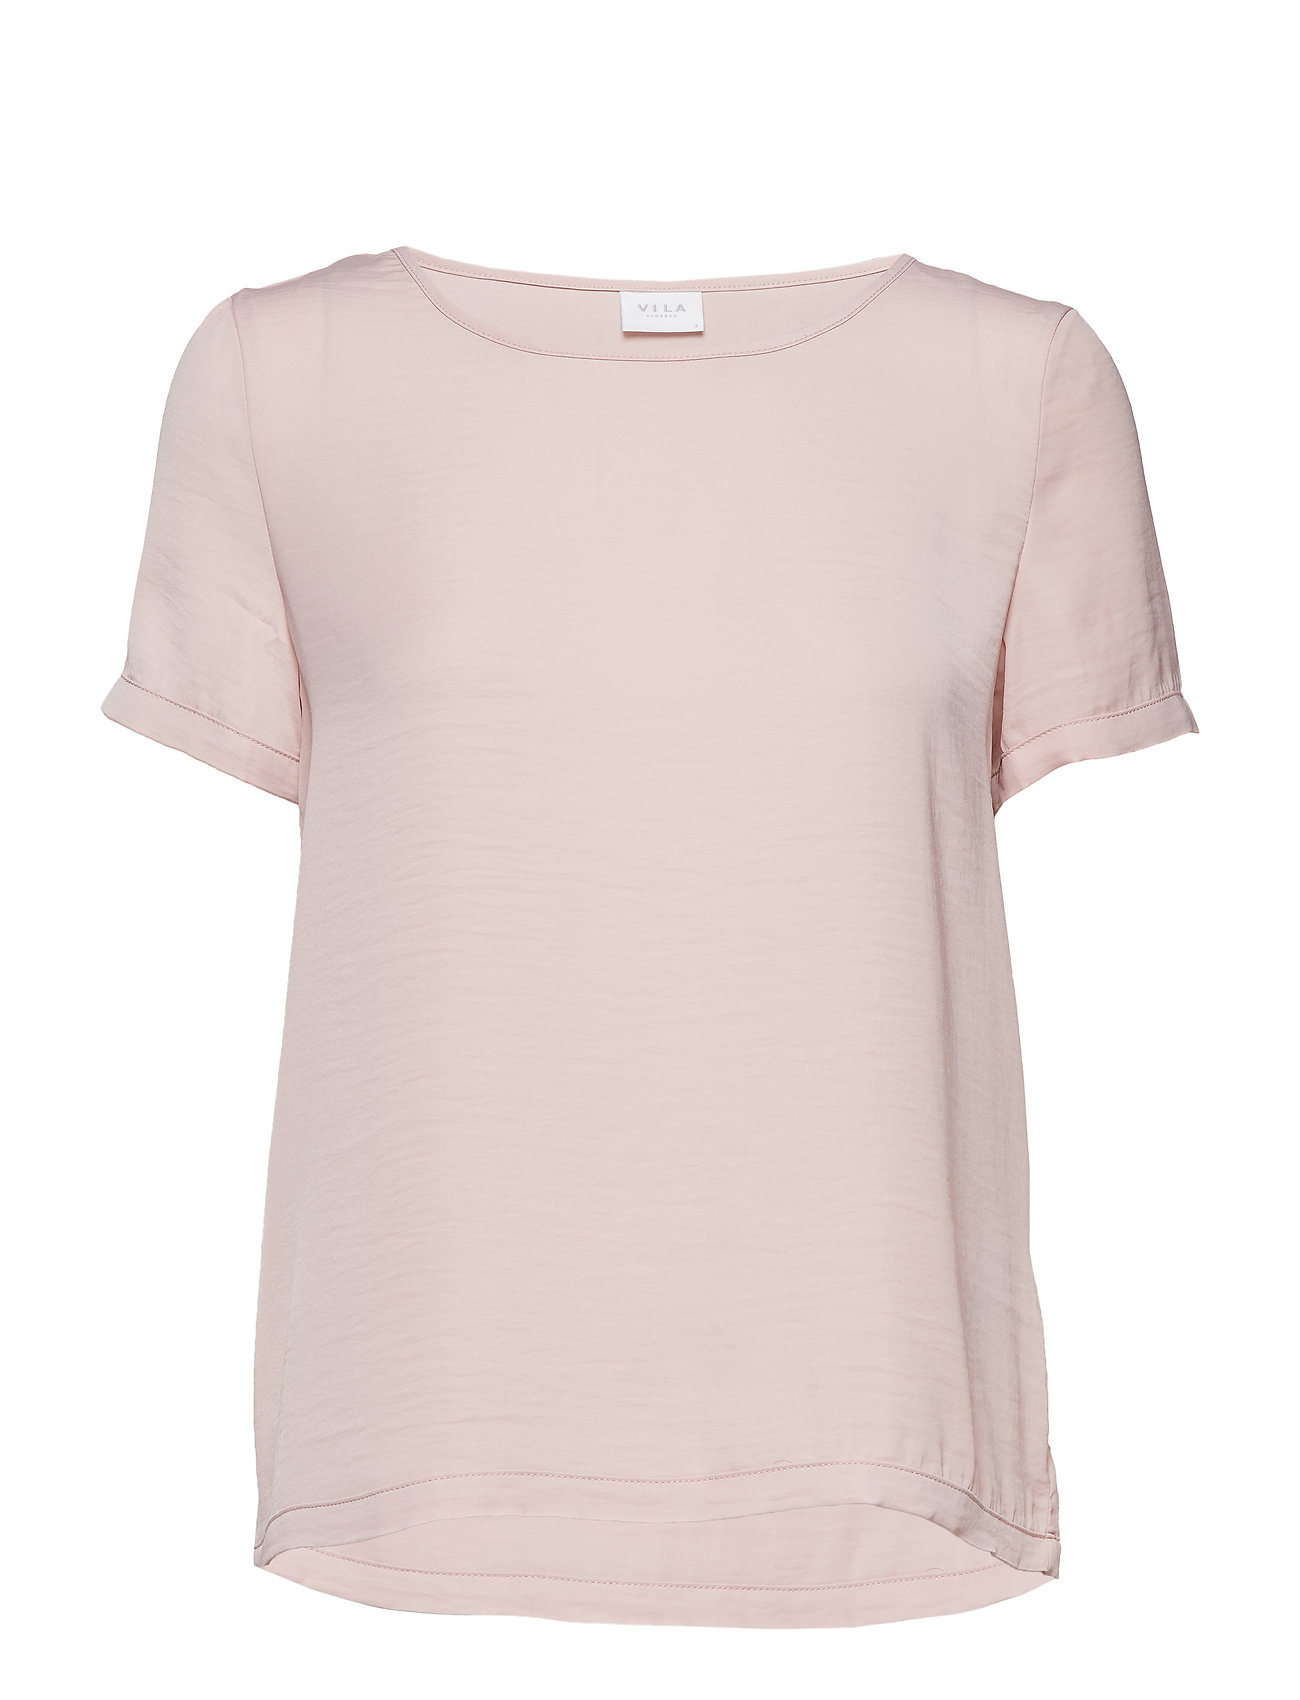 Image of Vimelli S/S New Top-Noos (3100672255)